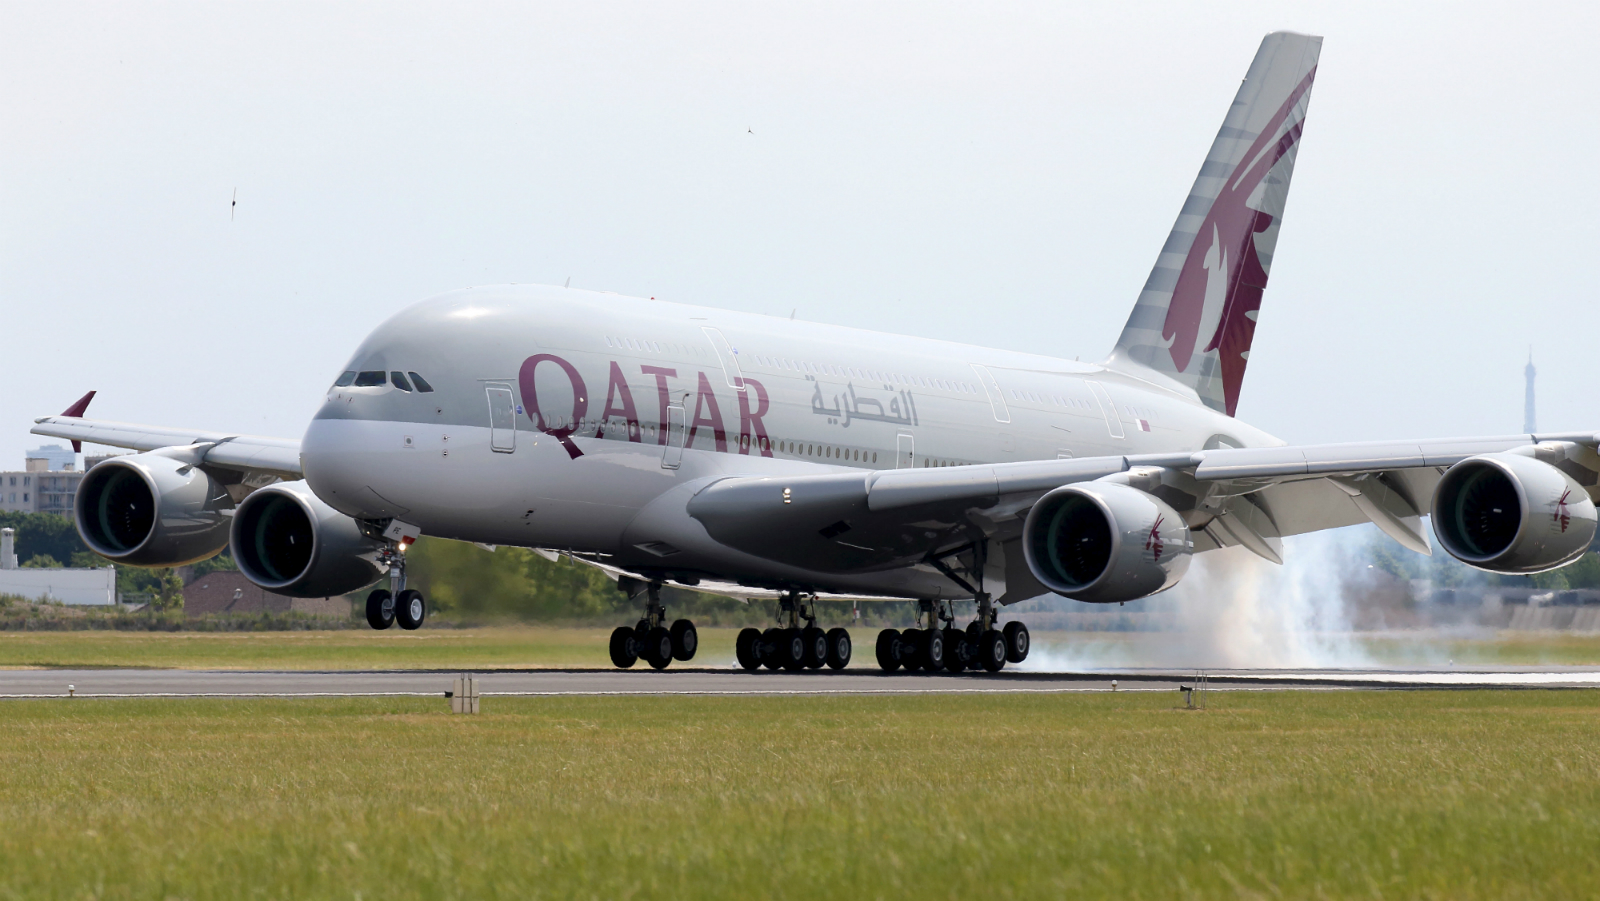 A Qatar Airways Airbus A380, the world's largest jetliner touches down at Le Bourget airport one day before the opening of the 51st Paris Air Show, June 14, 2015.